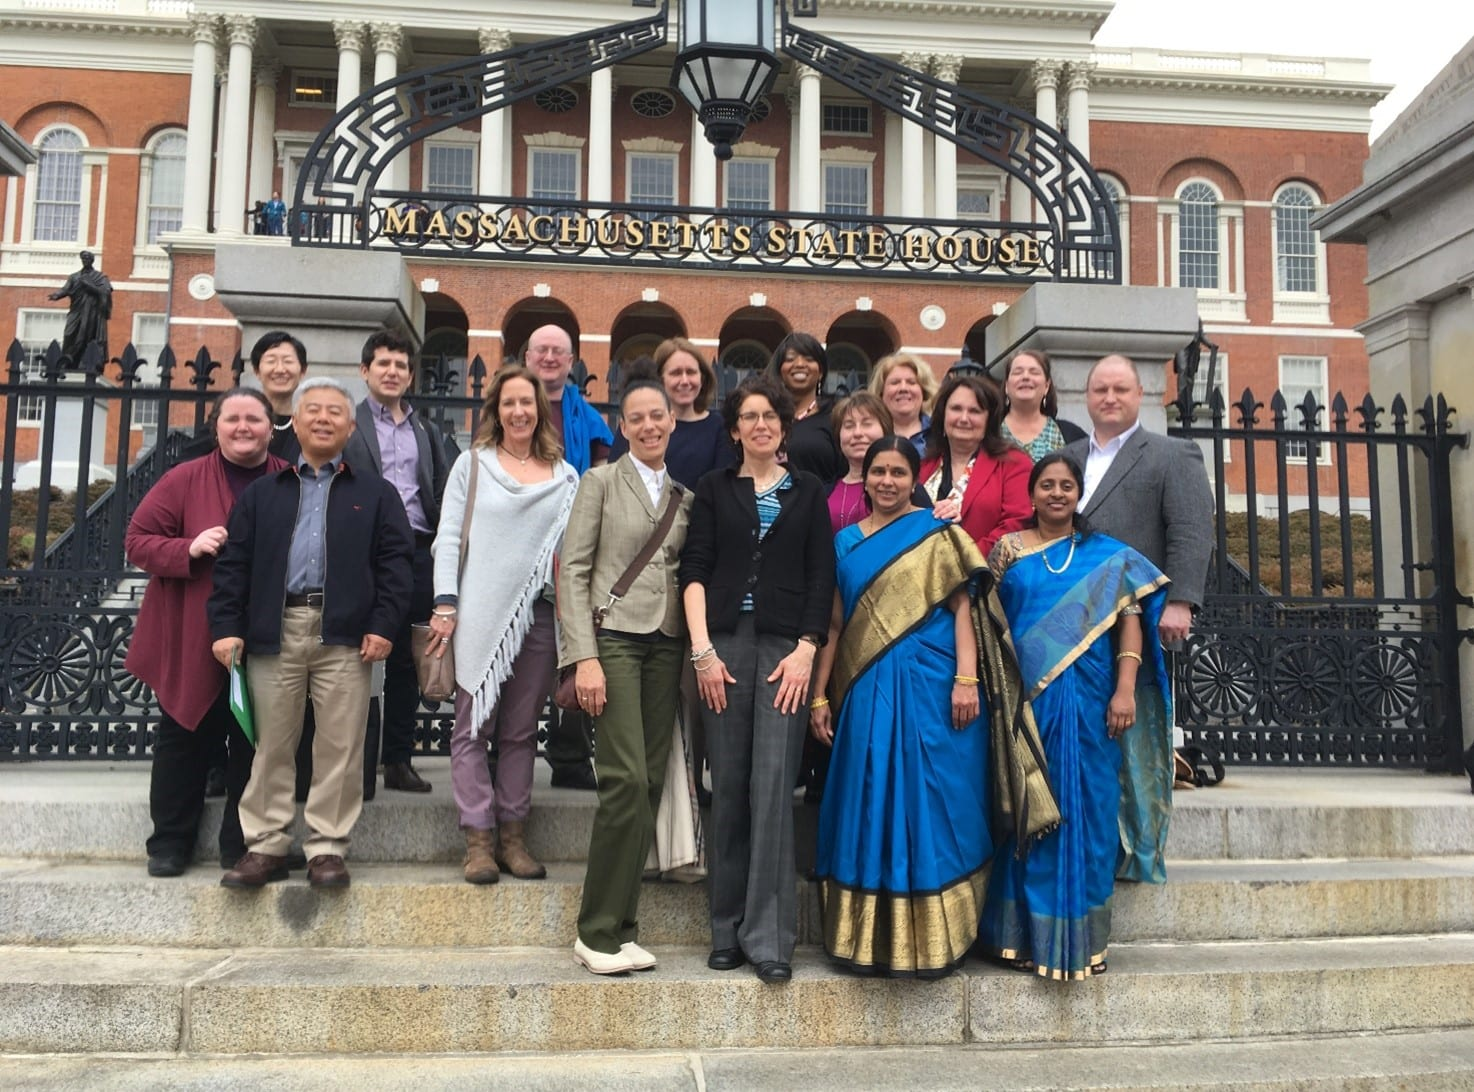 Photo: family leadership graduates in front of Massachusetts State House